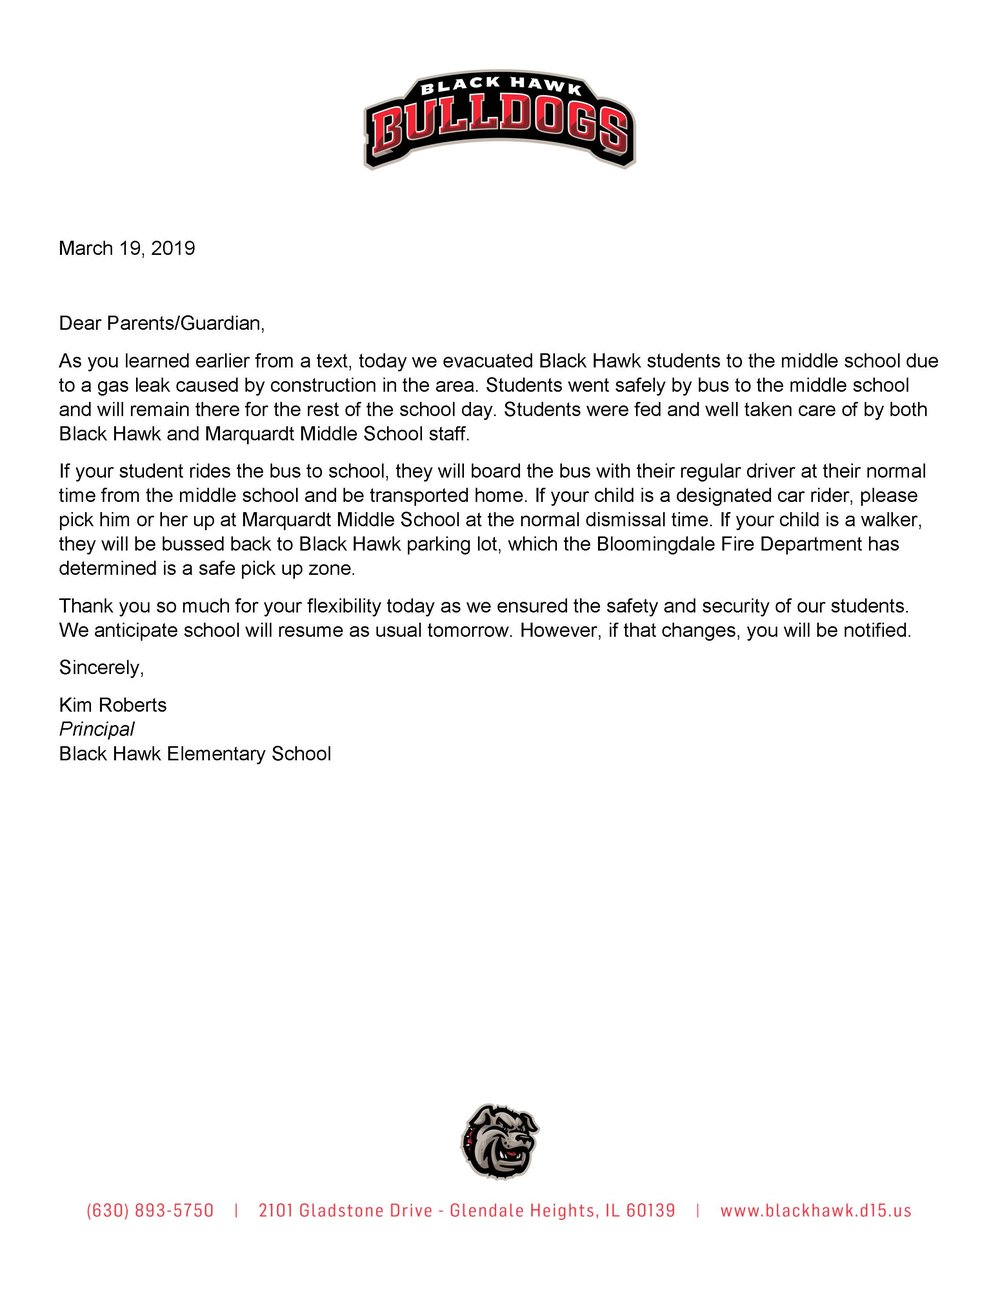 Letter to Parents_Black Hawk gas leak_updated 2_Page_1.jpg